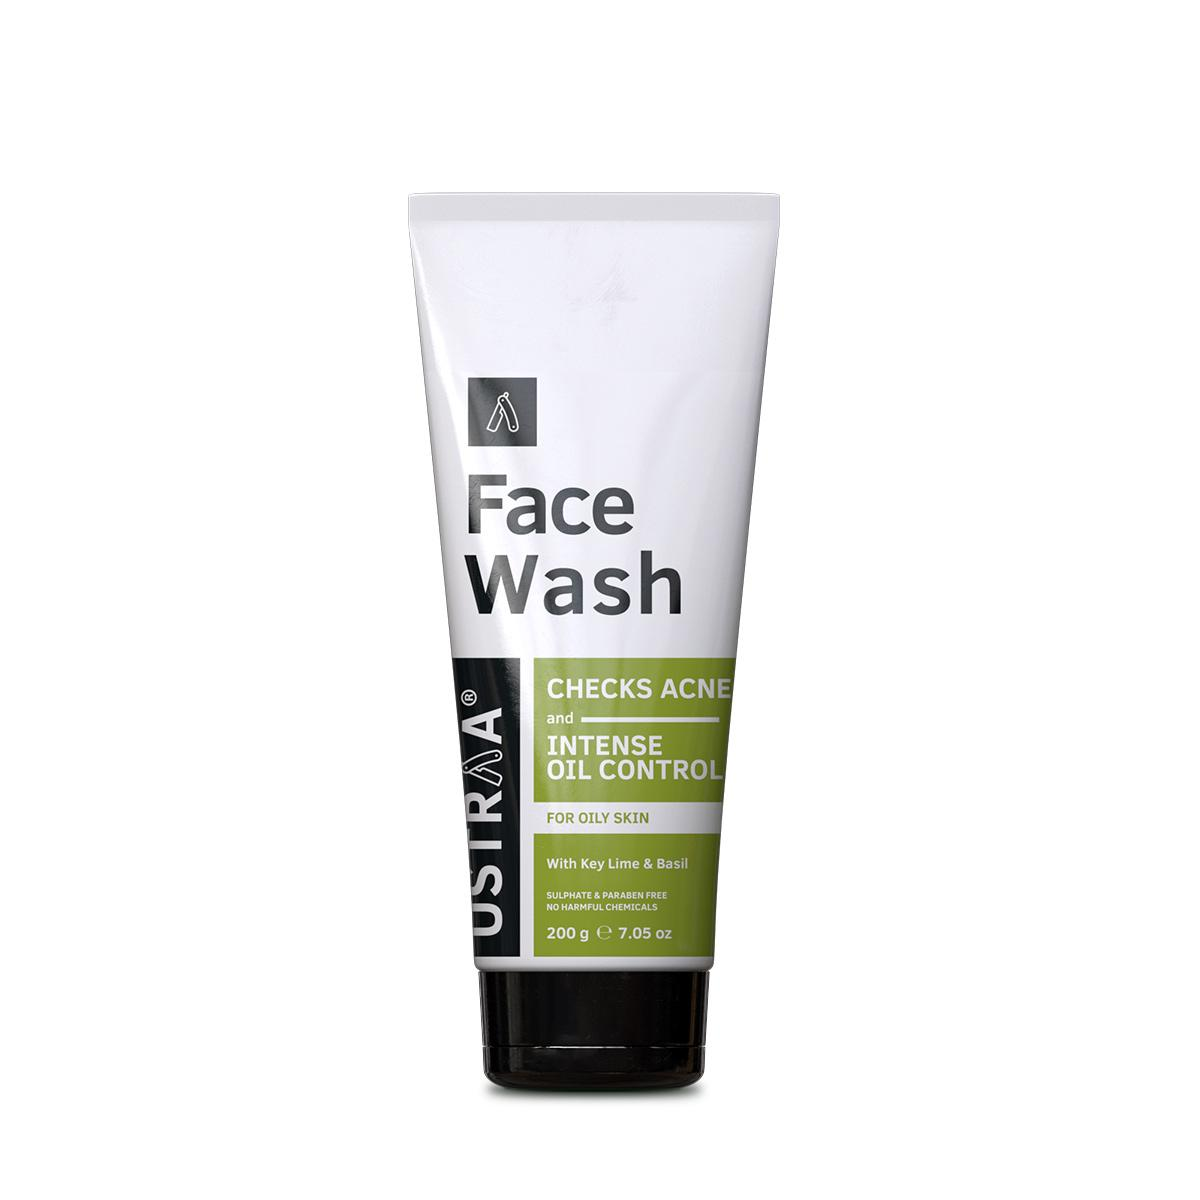 Ustraa Face Wash - for Oily and Acne Prone Skin - Sulphate & Paraben Free - Checks Acne and Blackheads - 200g